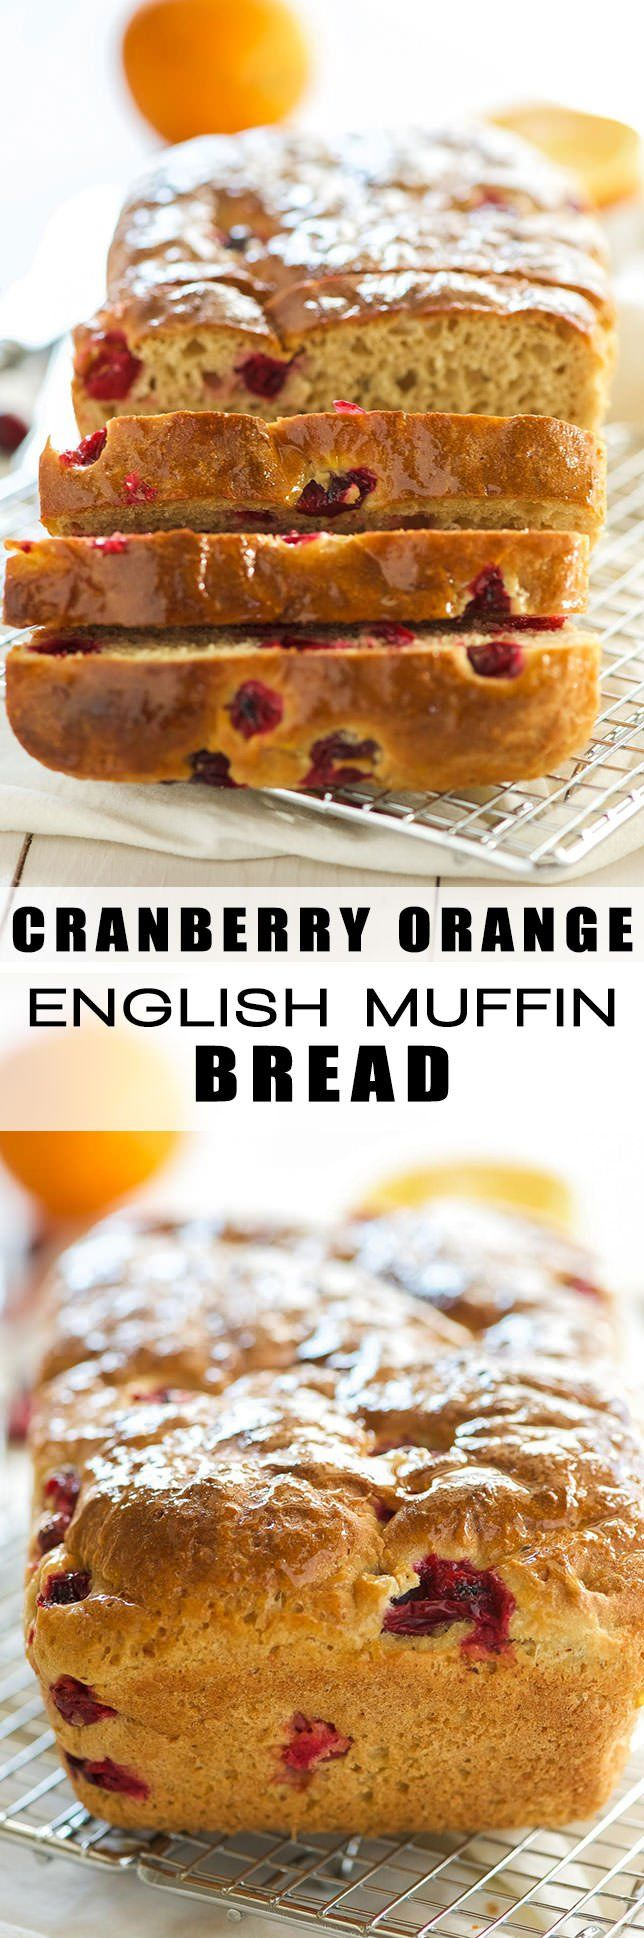 Cranberry Orange Whole Wheat English Muffin Bread is an easy quick bread and a heart healthy way to start your morning! Perfectly toasted, spread with a bit of butter and a cup of coffee!